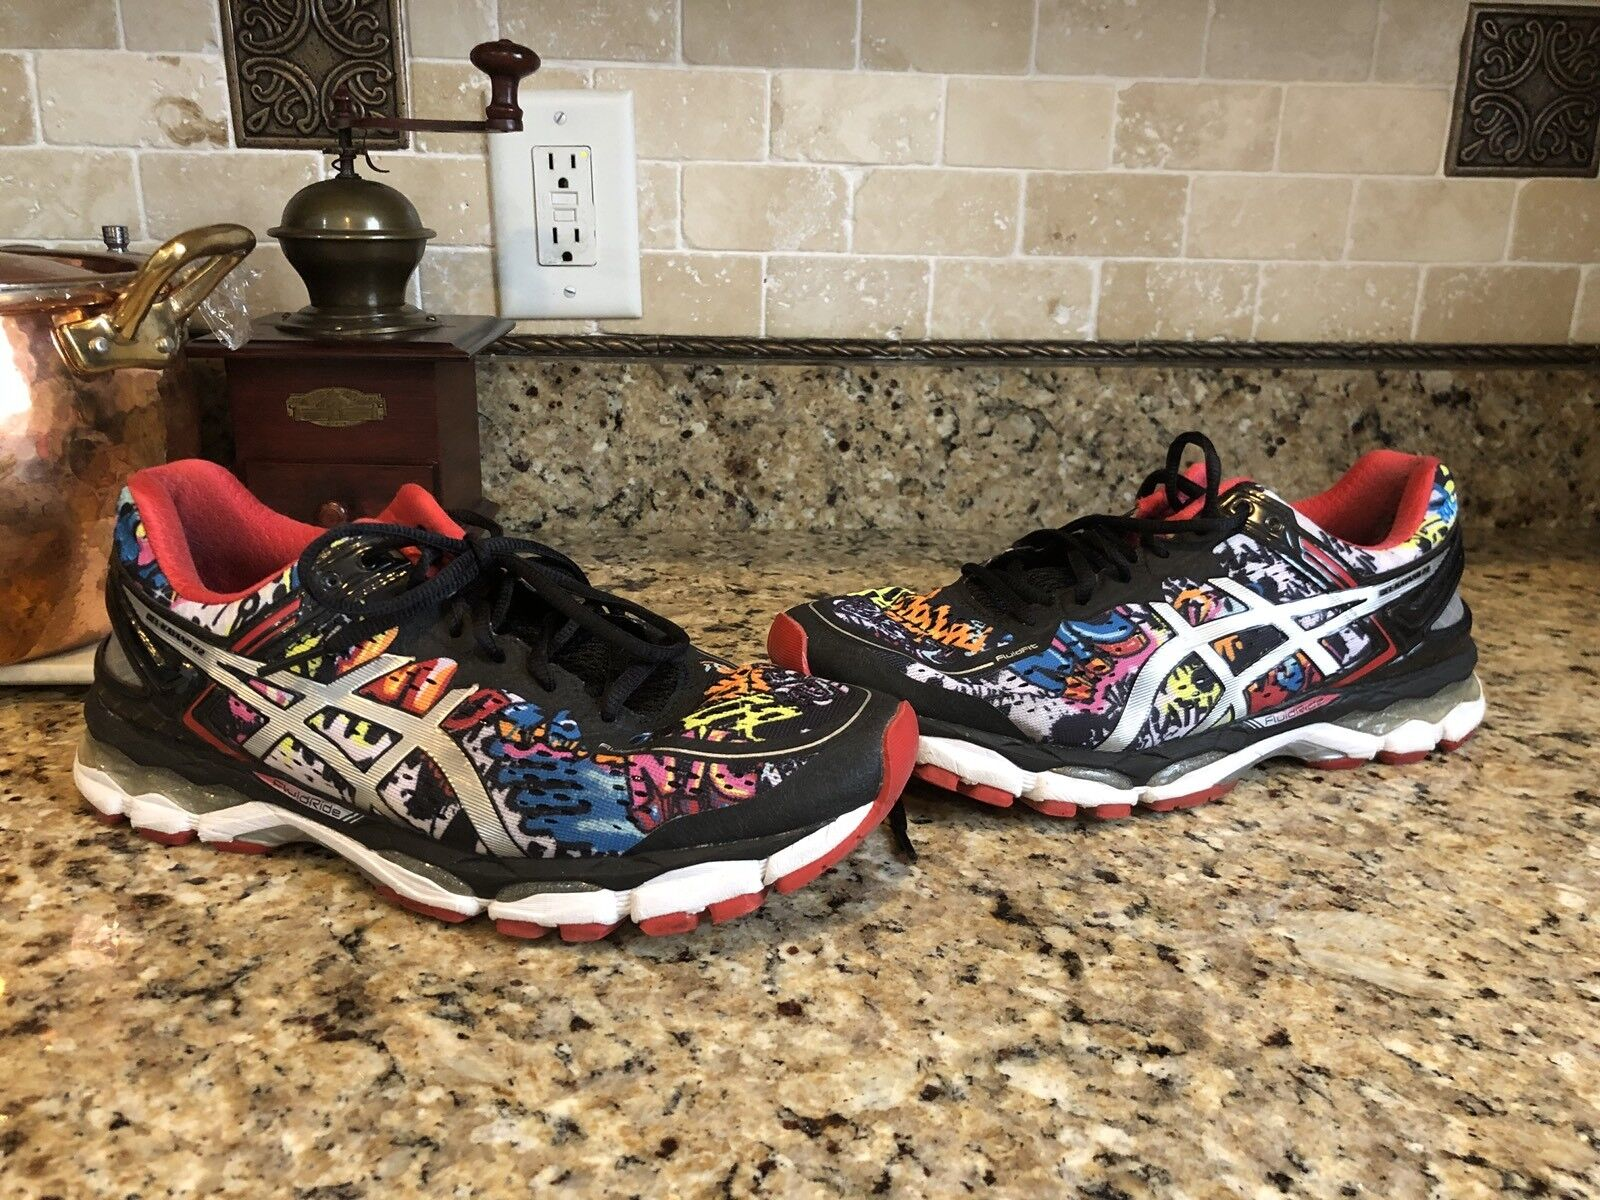 Asics Gel Kayano Kayano Kayano 22 New York NYC Marathon Freedom Men's Running shoes 9 1 2 359c57